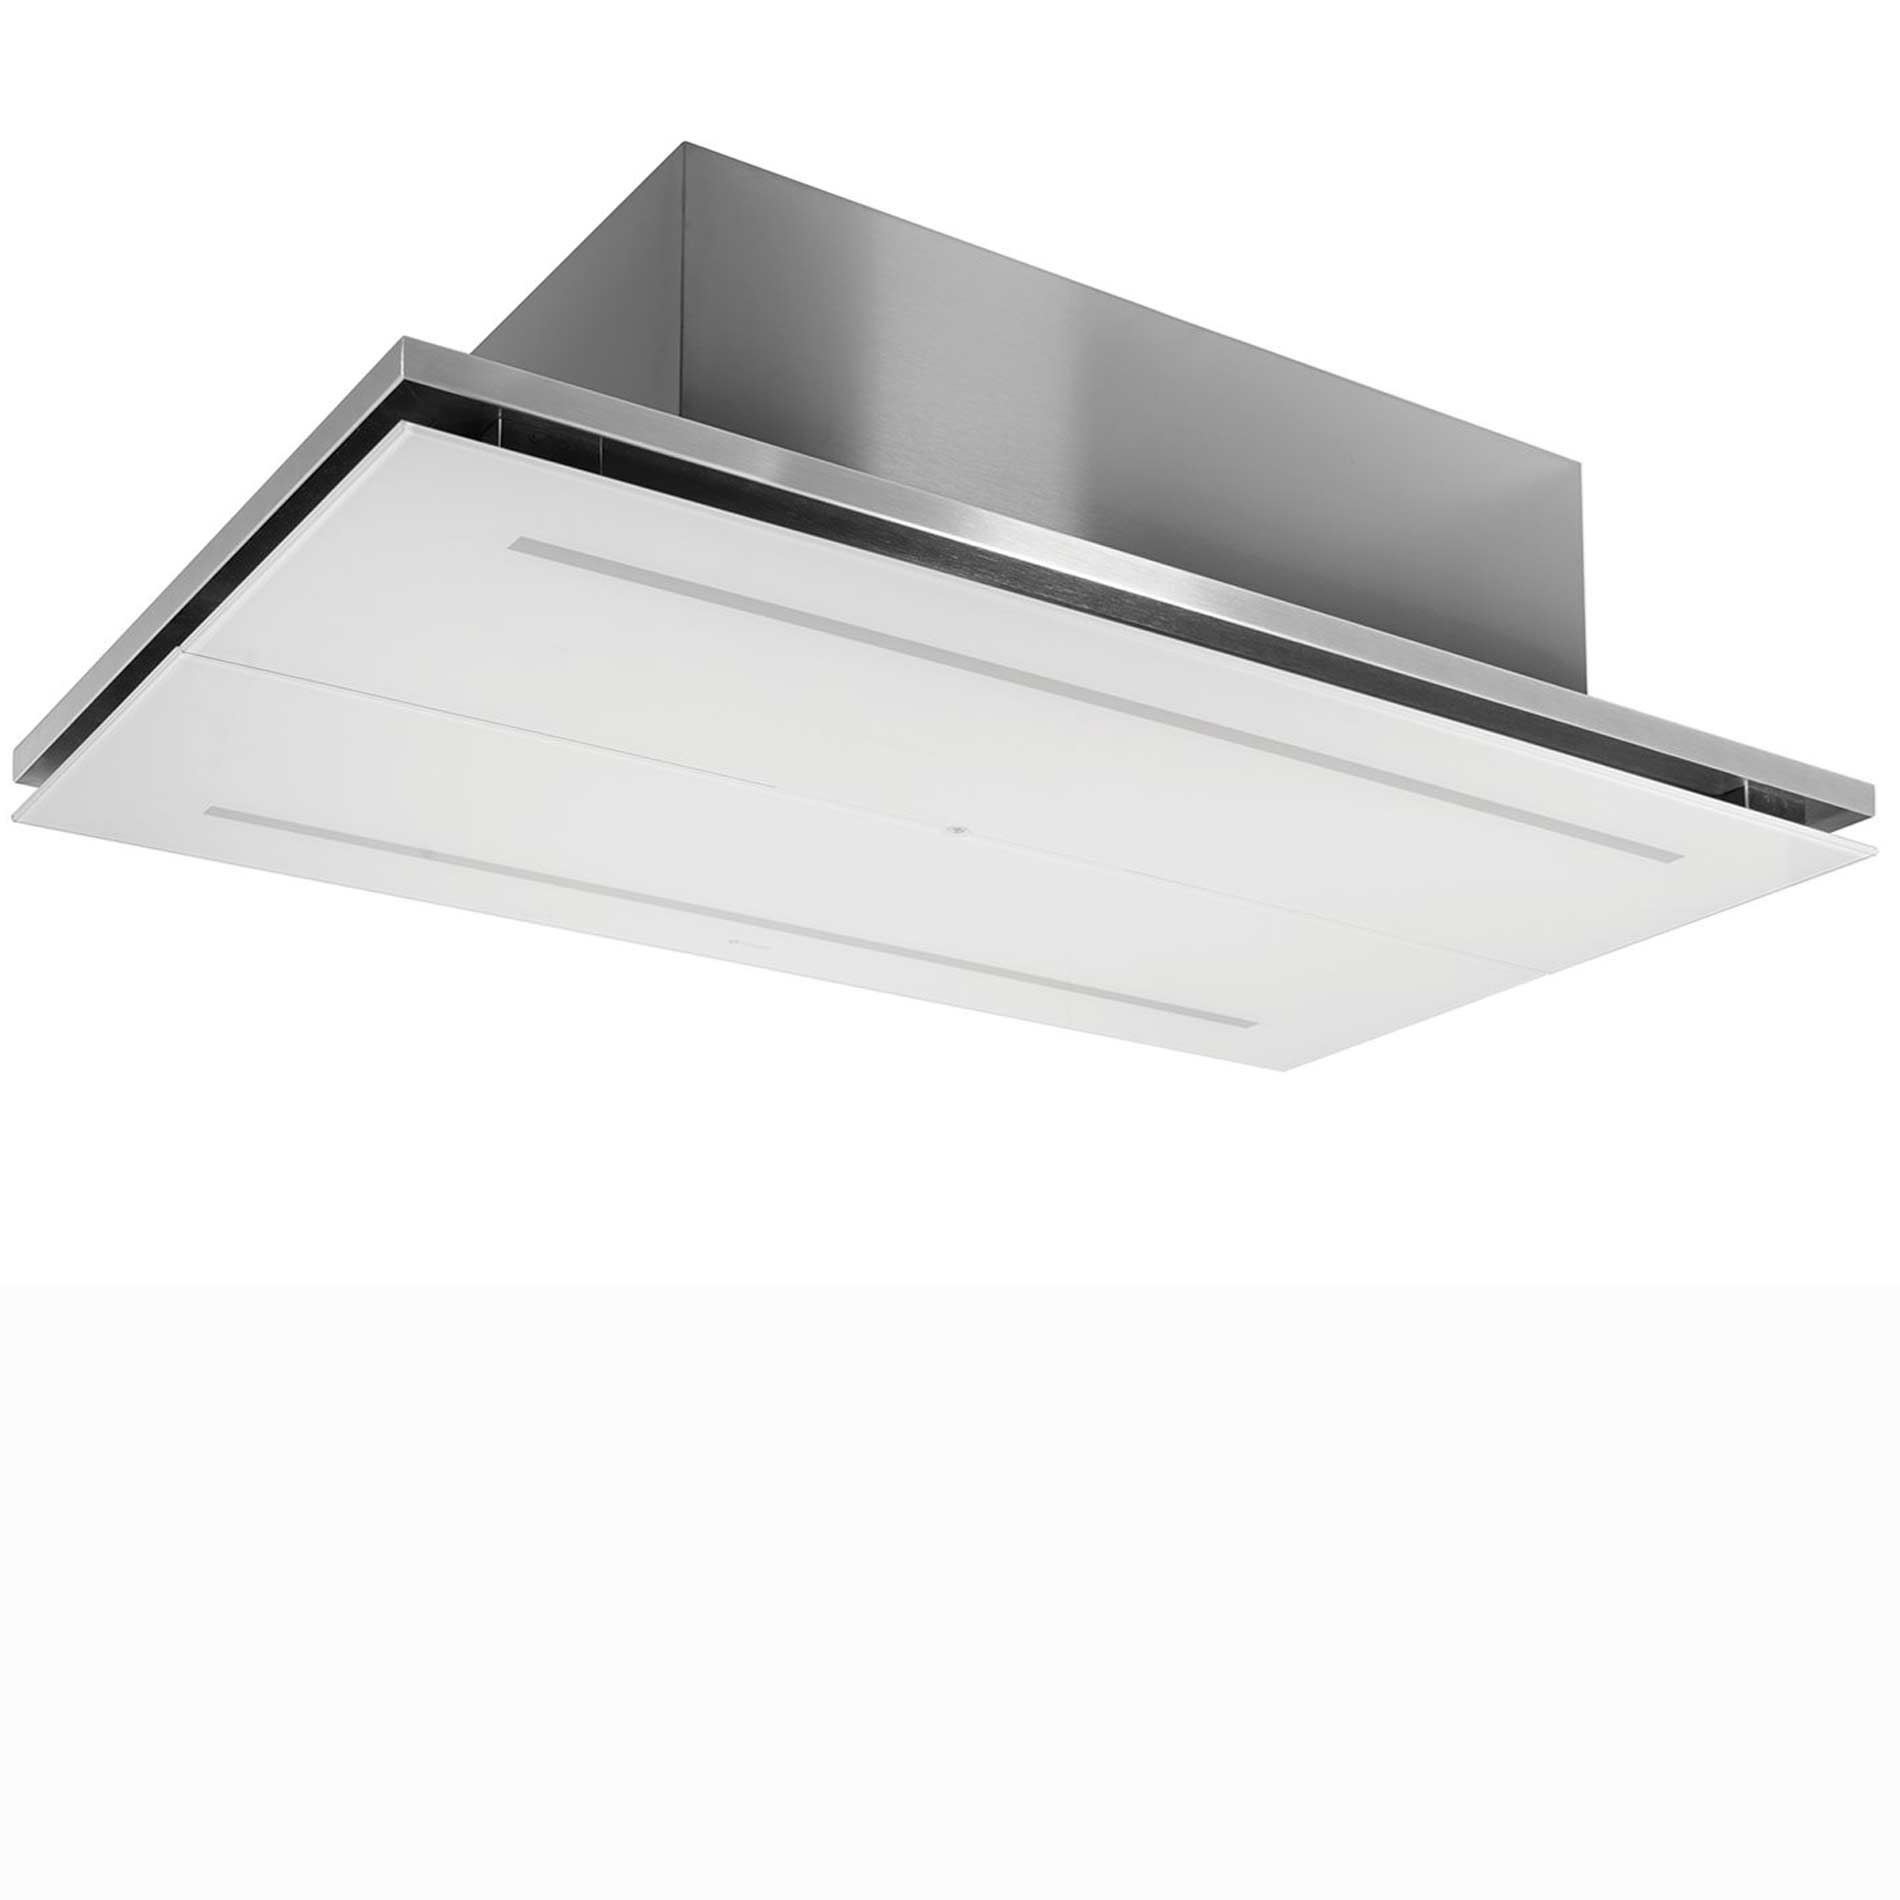 Picture of CE1122SS Ceiling Hood with Built-in Motor